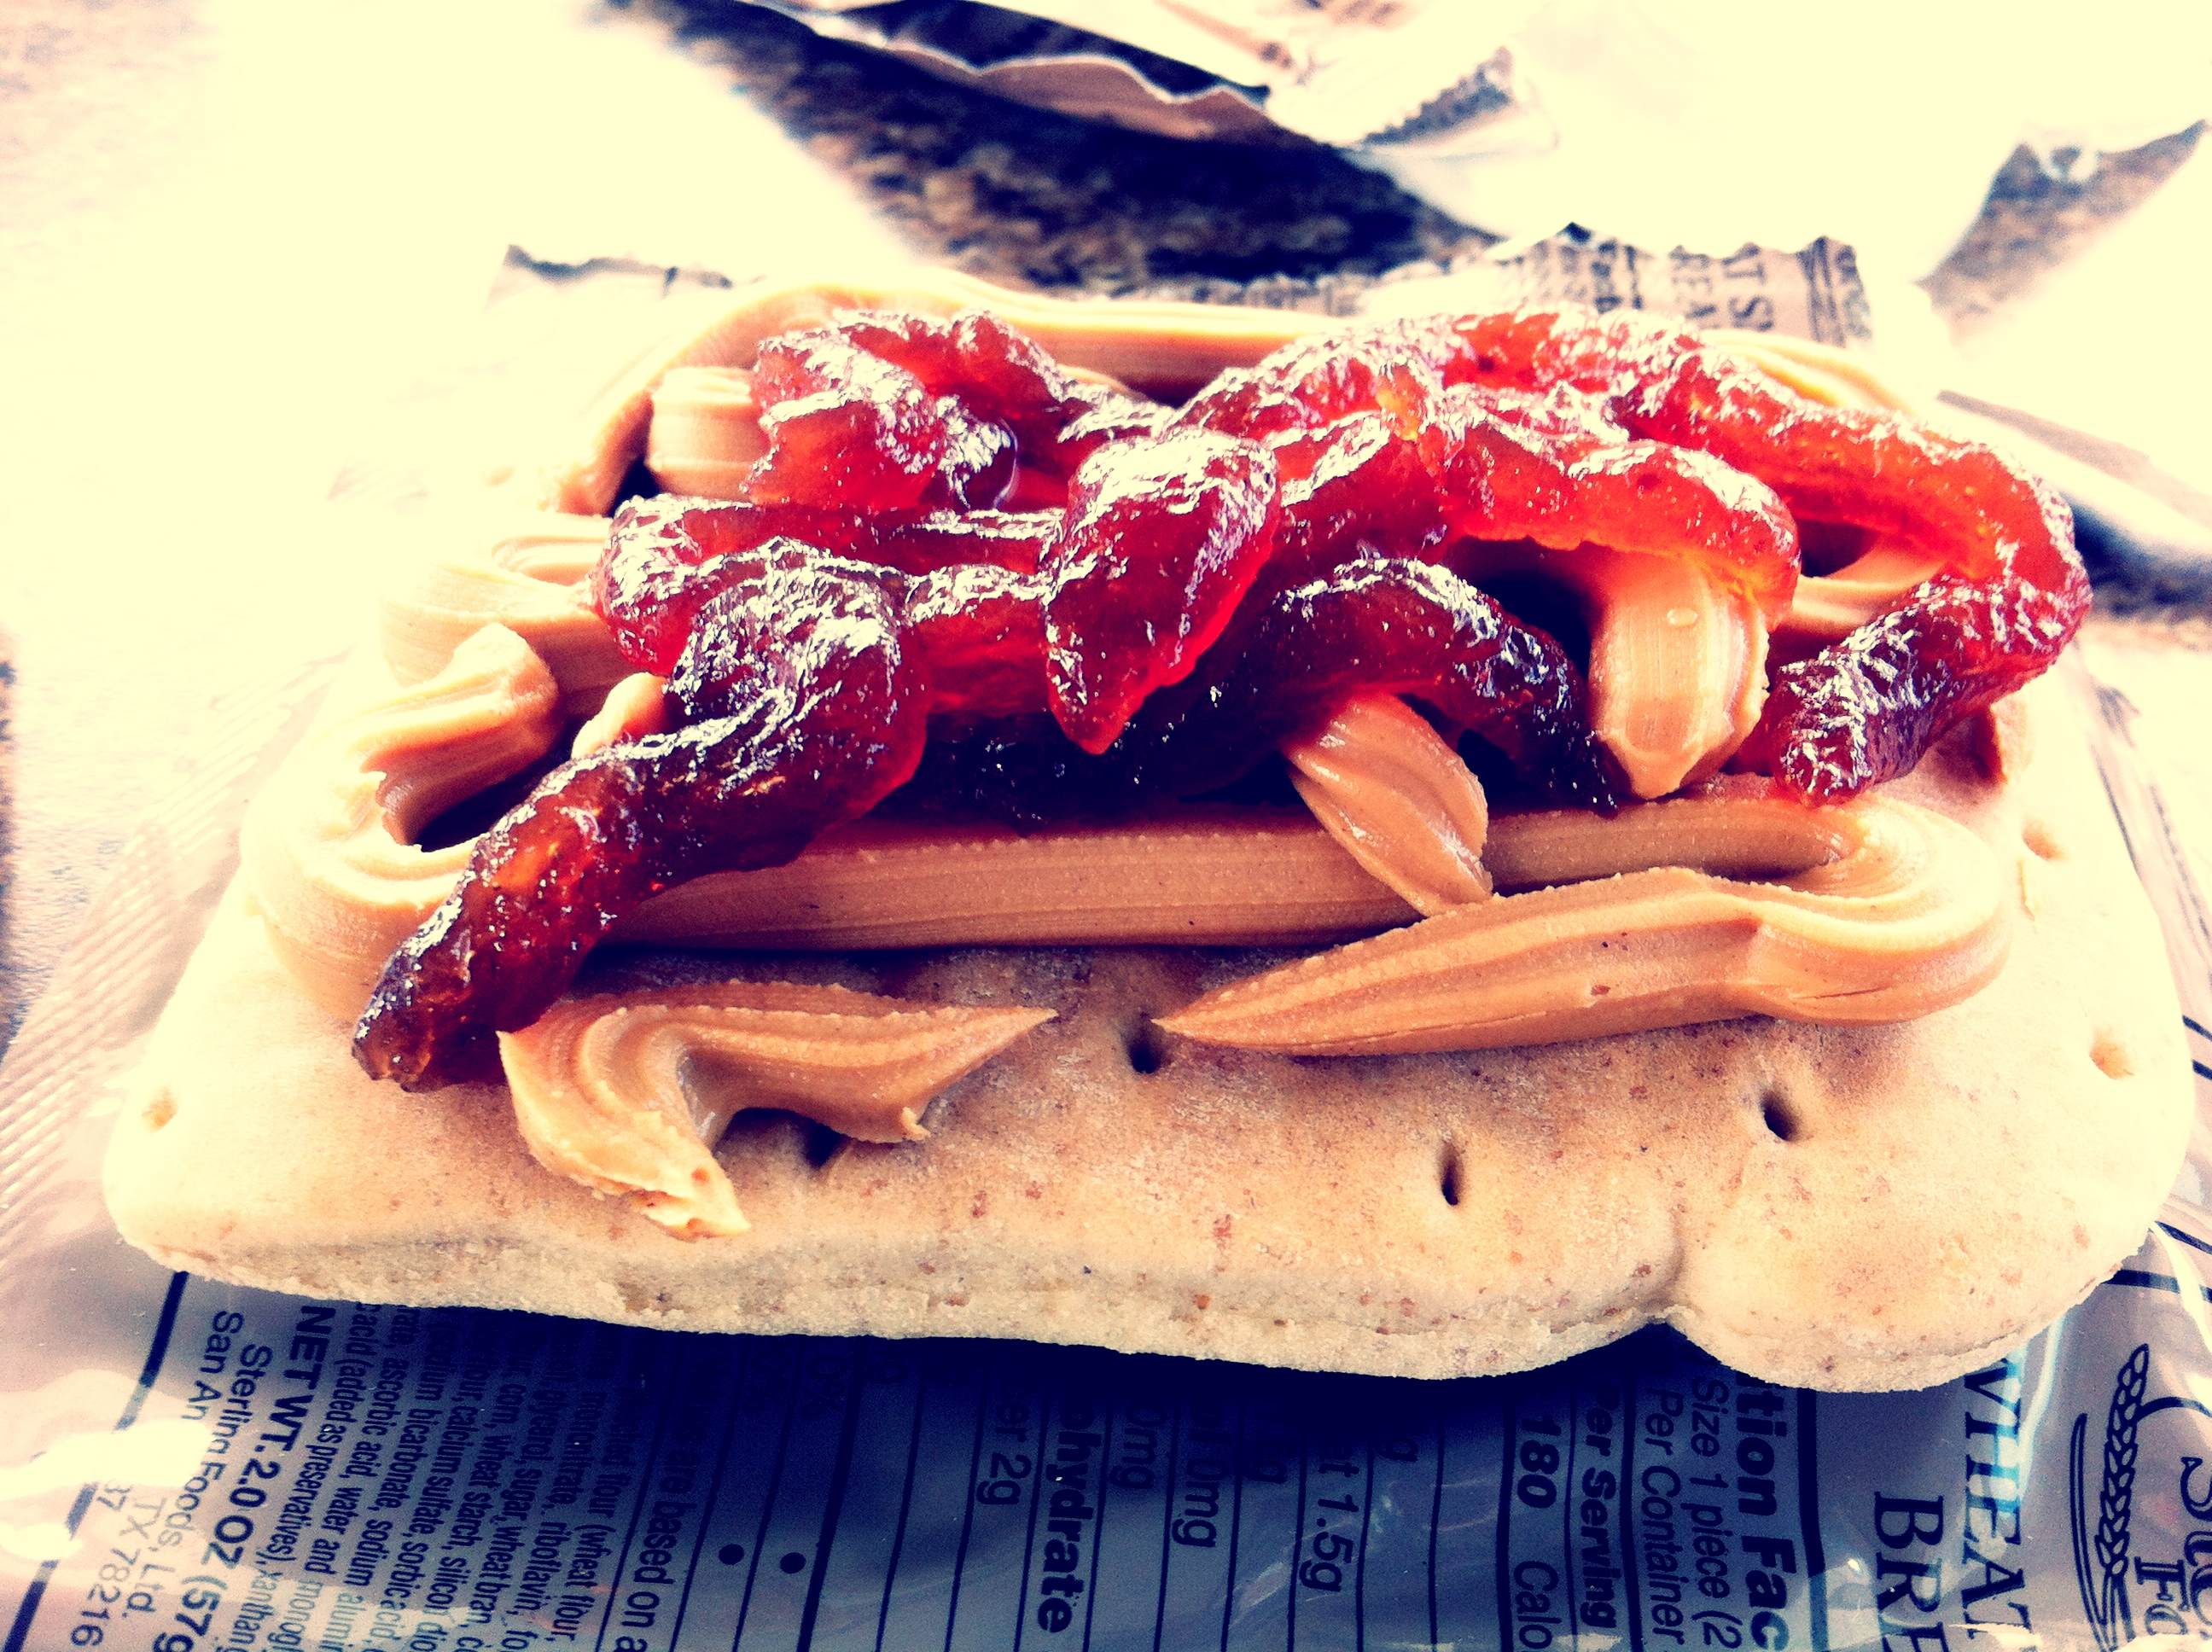 Peanut Butter, Strawberry Jam, and Wheat Snack Bread. Your argument is invalid.